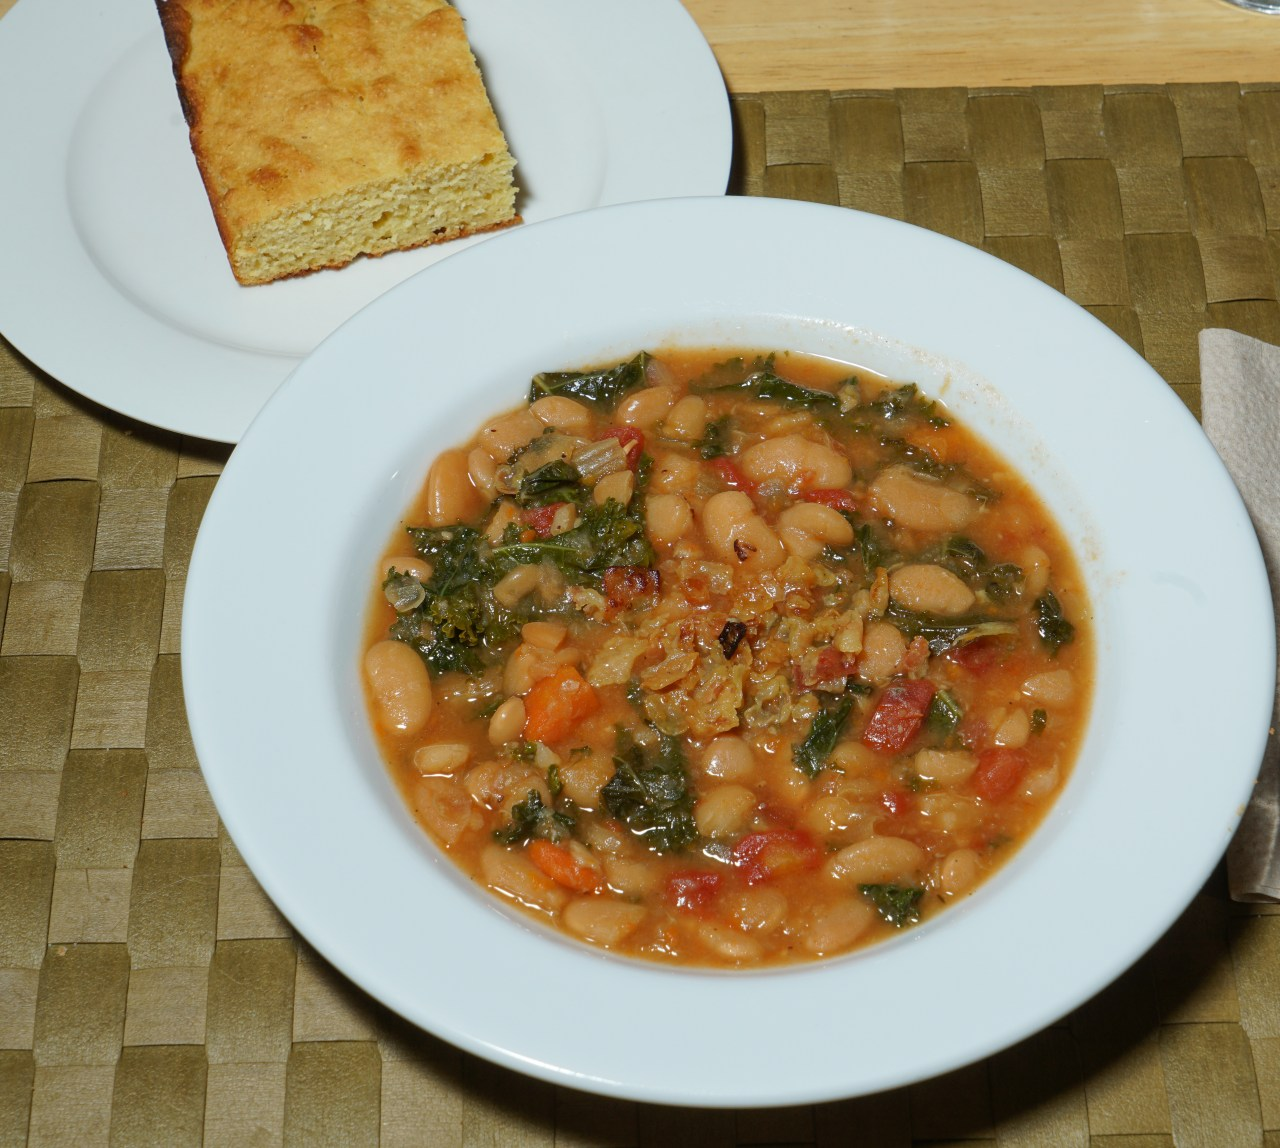 Dinner is served: Tuscan Bean Stew